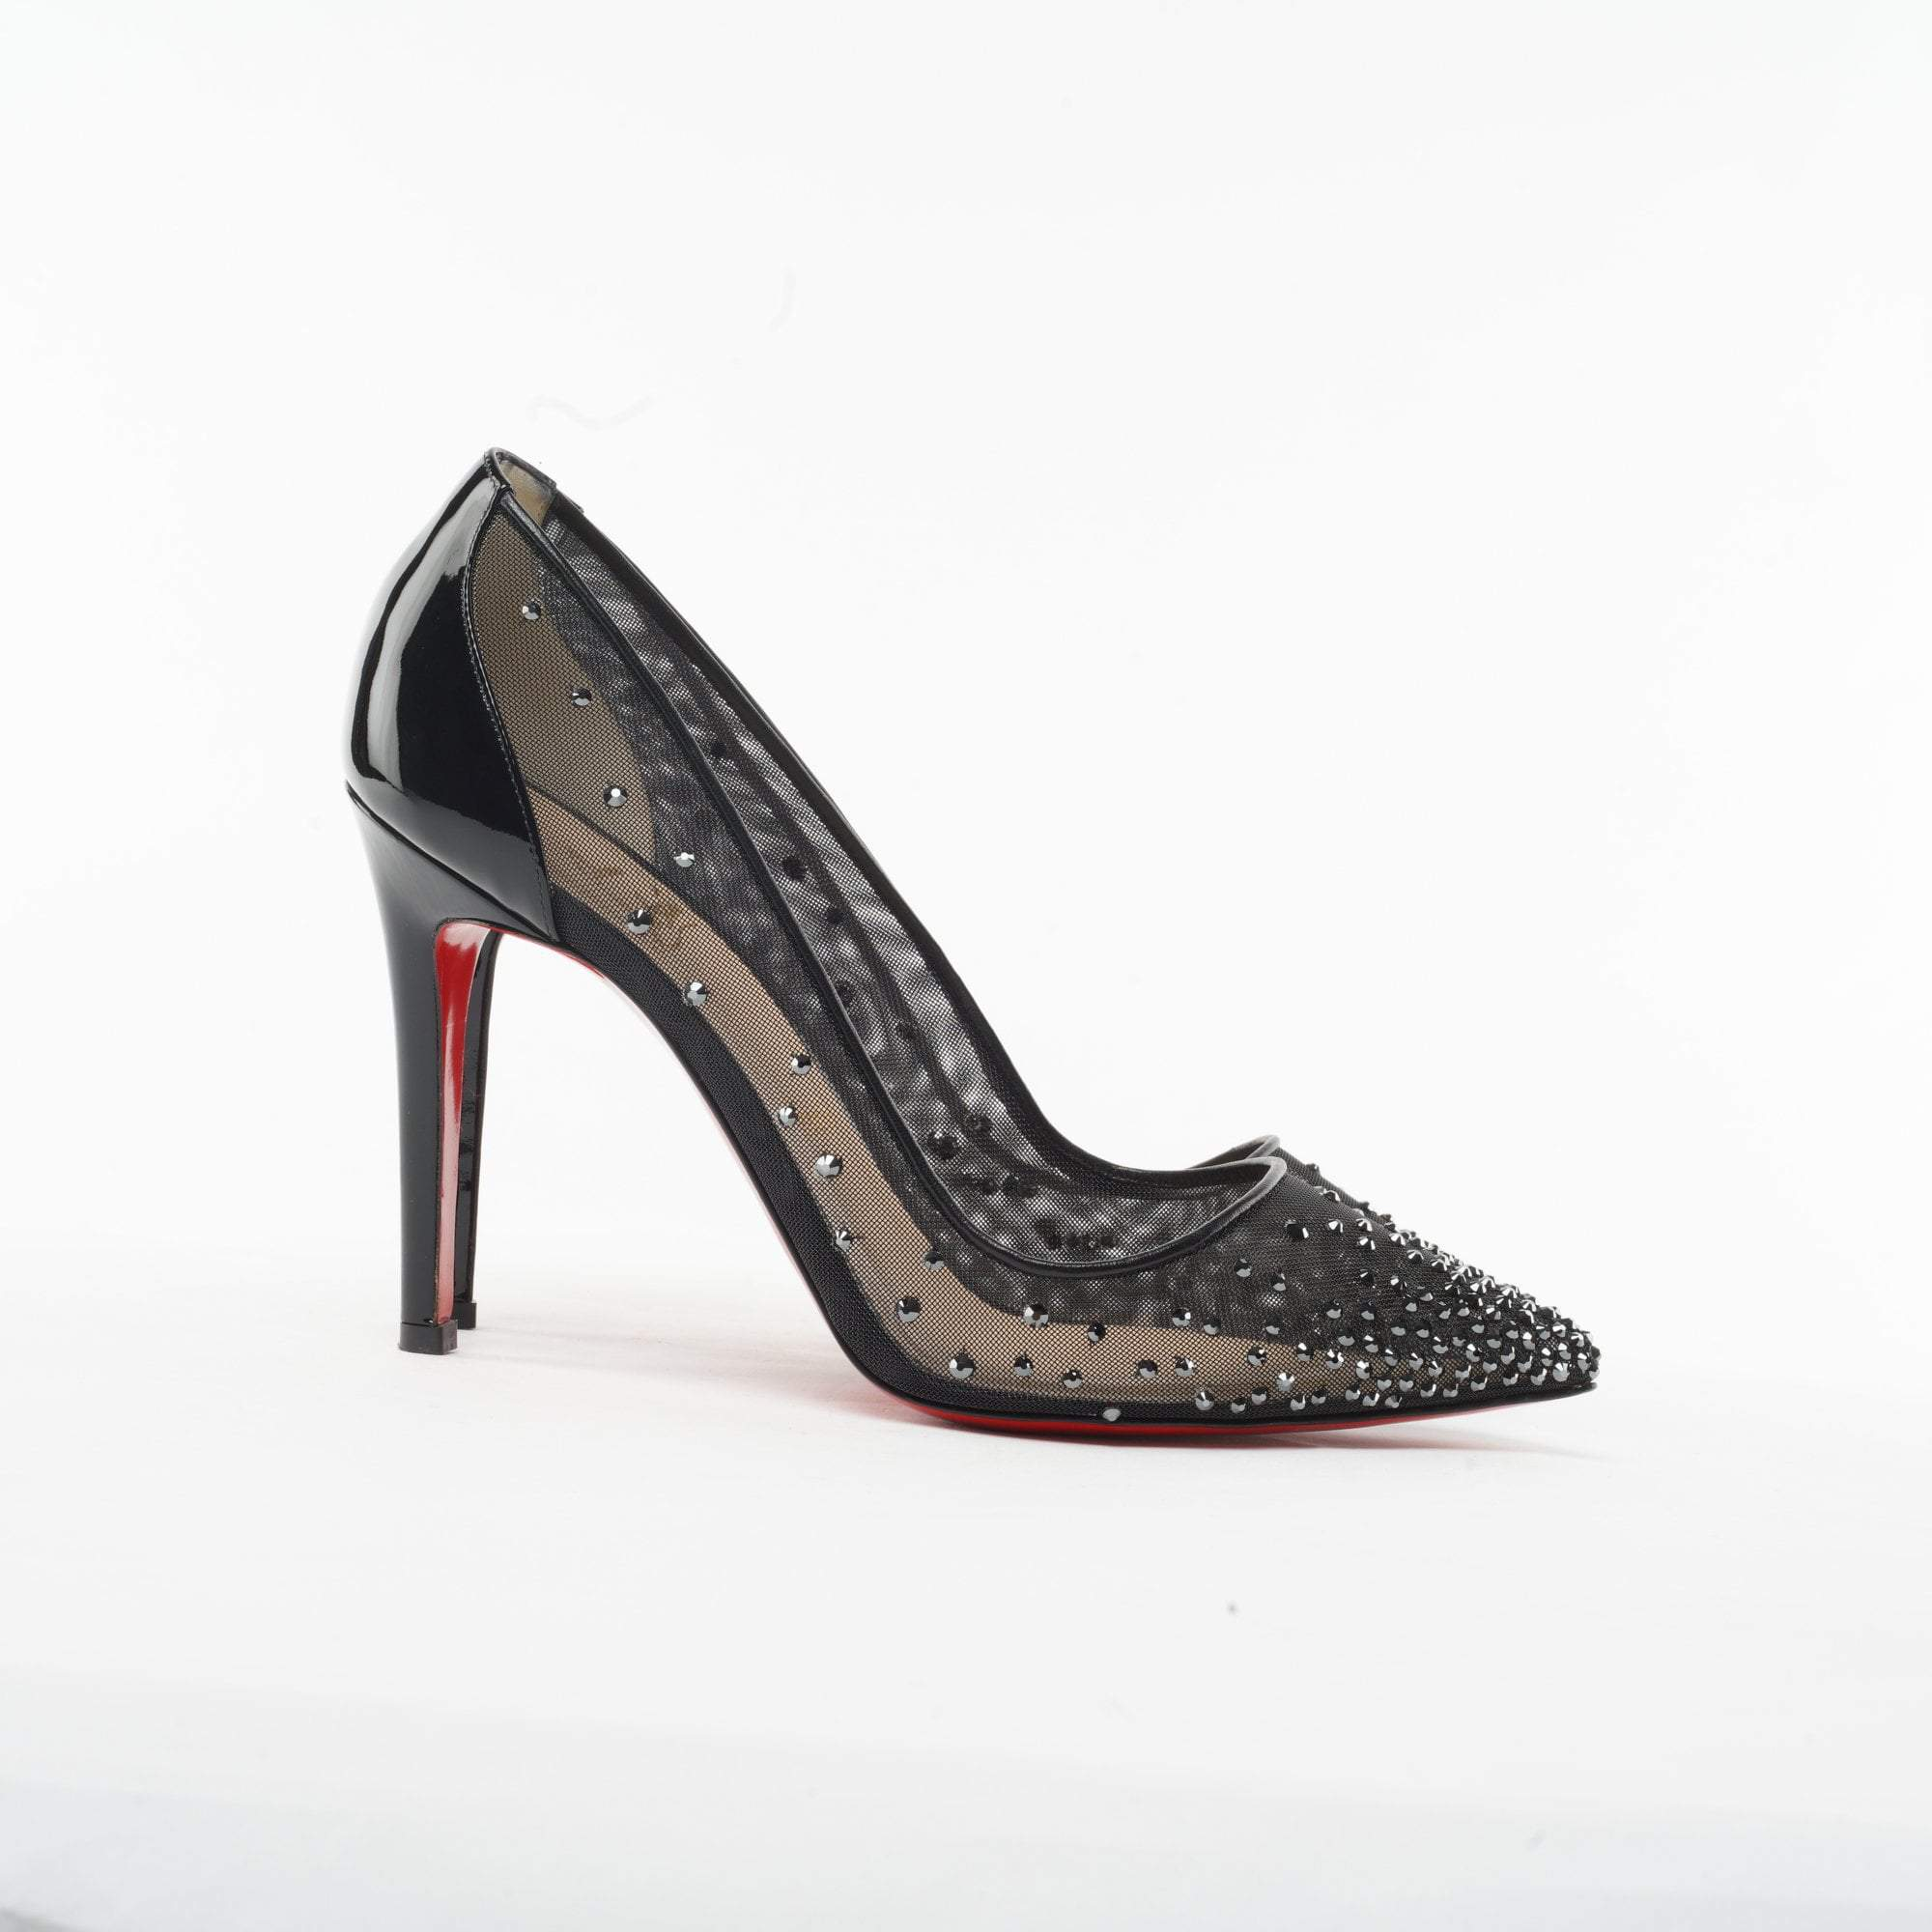 Christian Louboutin Follies Strass Mesh Pumps